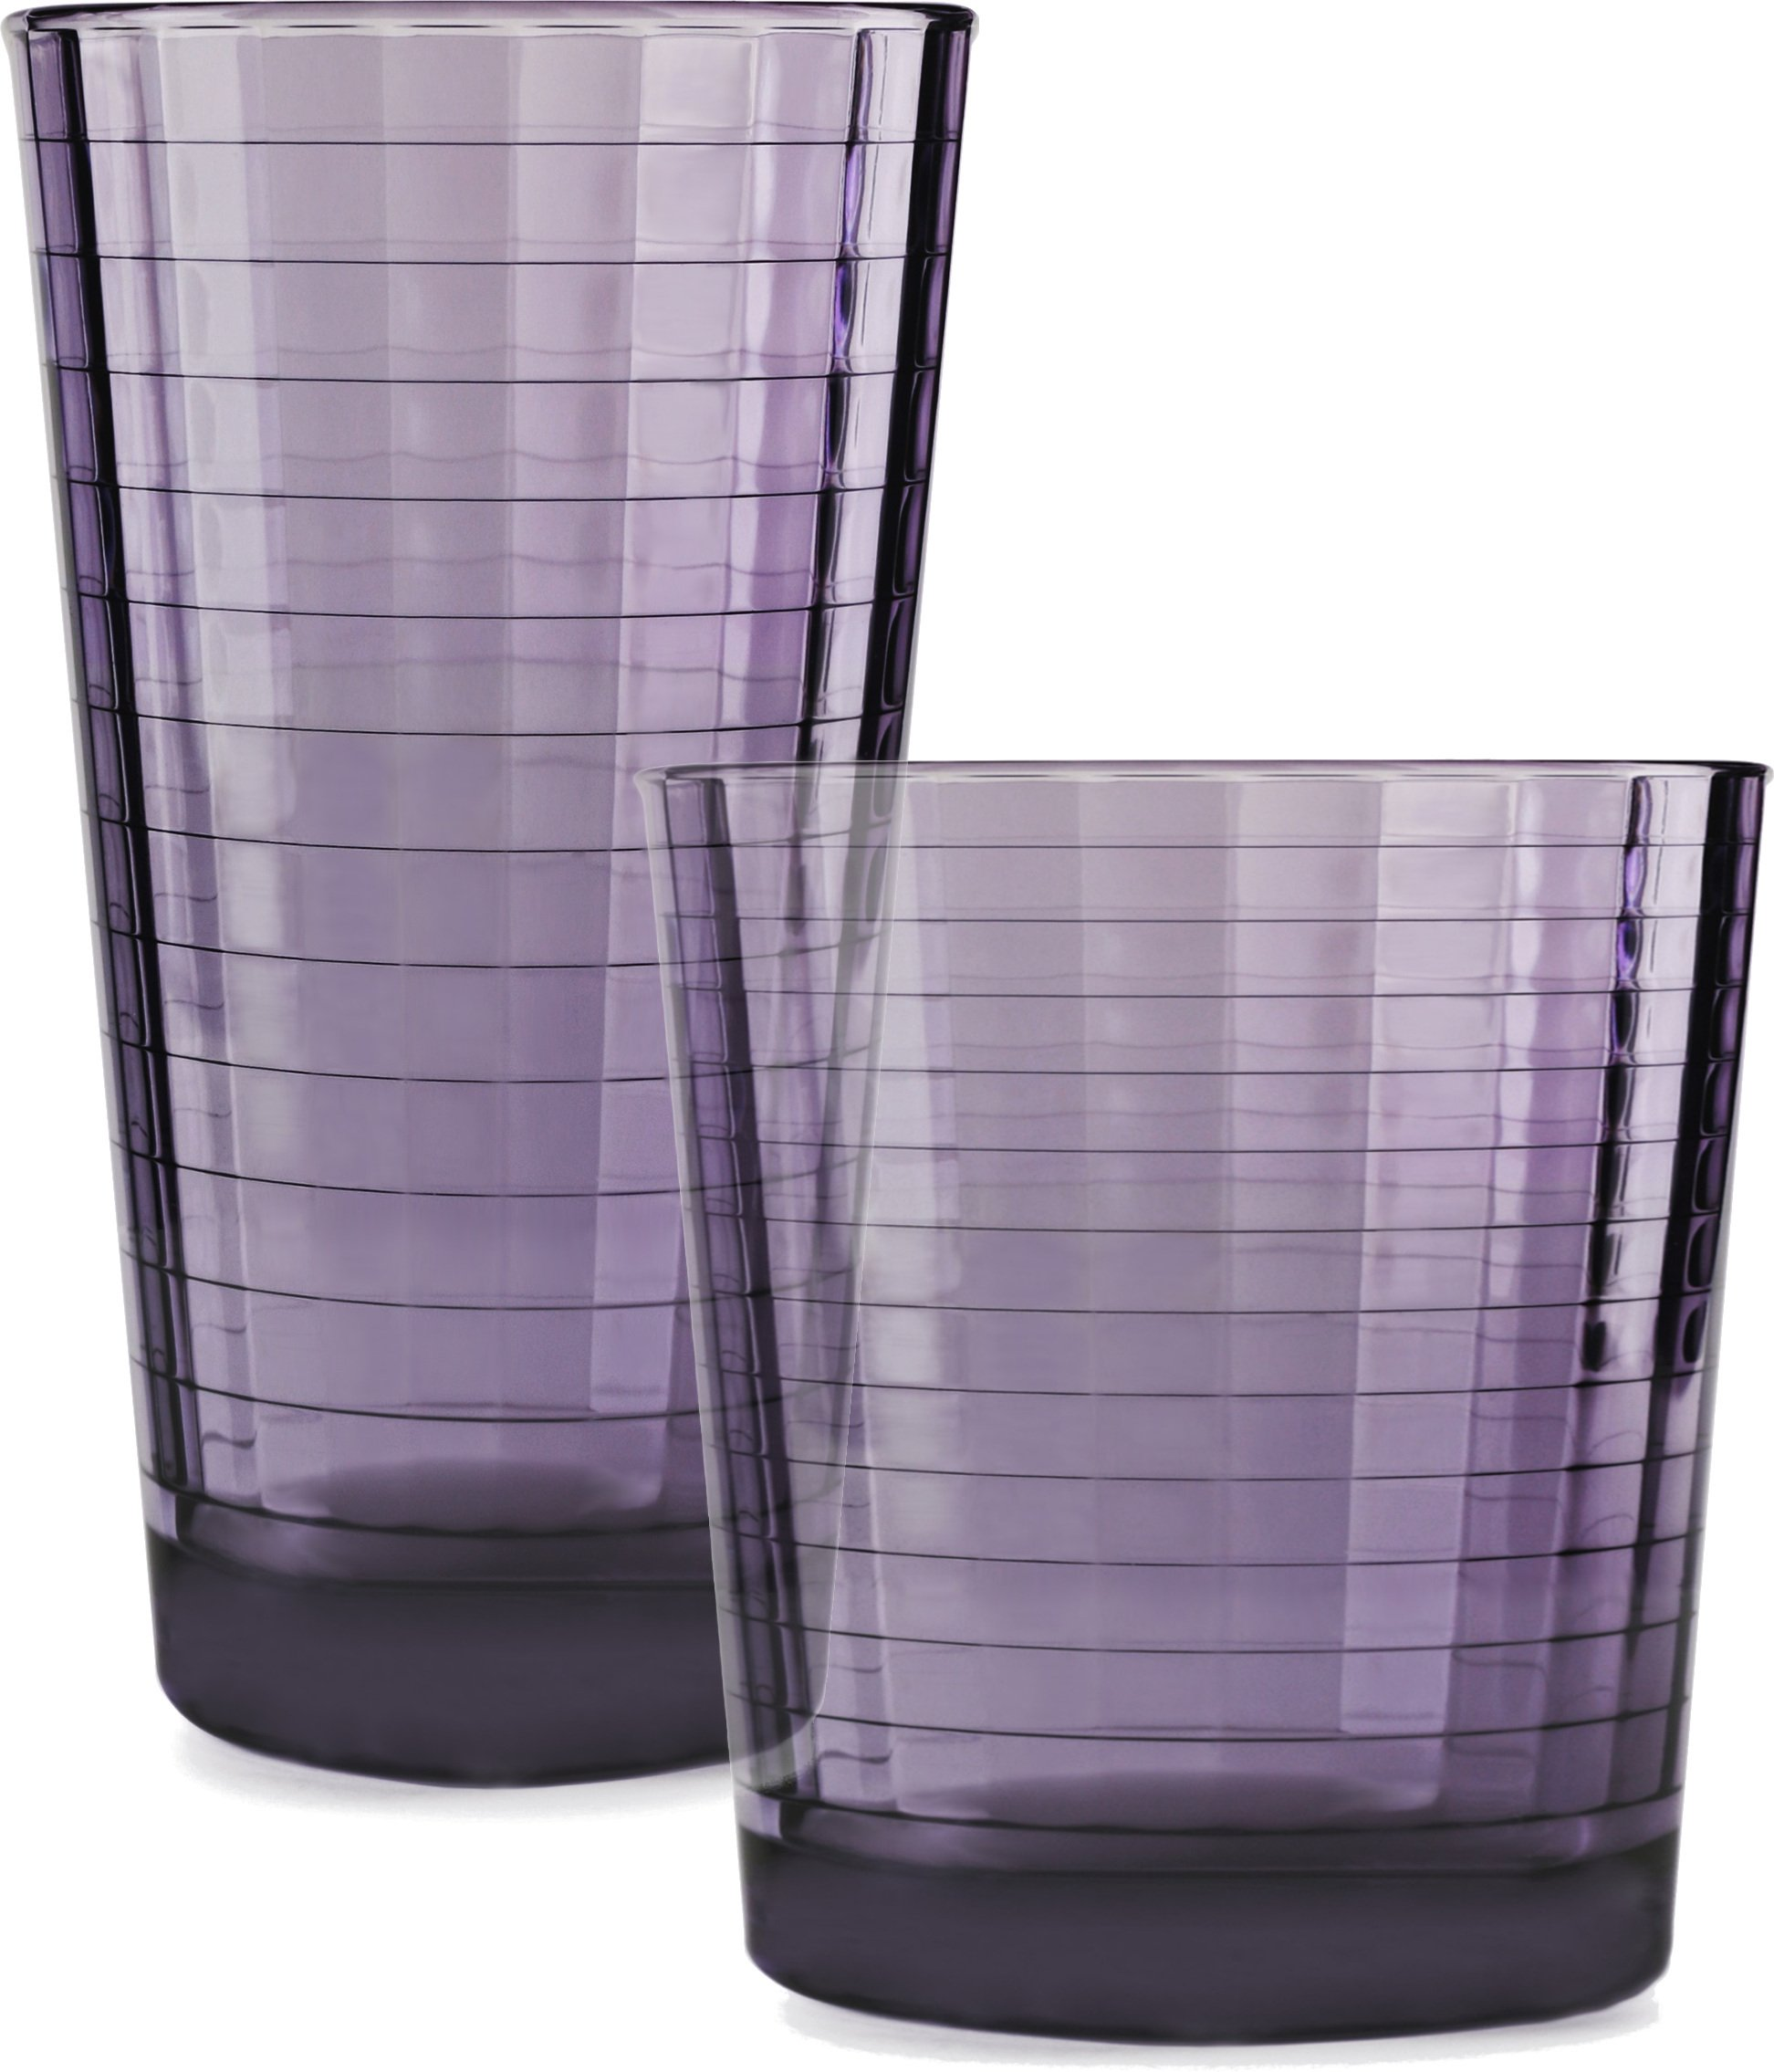 Circleware Windowpane Plum Huge Set of 16 Drinking Glasses, 8-16oz and 8-13oz Double Old Fashioned Whiskey Glass